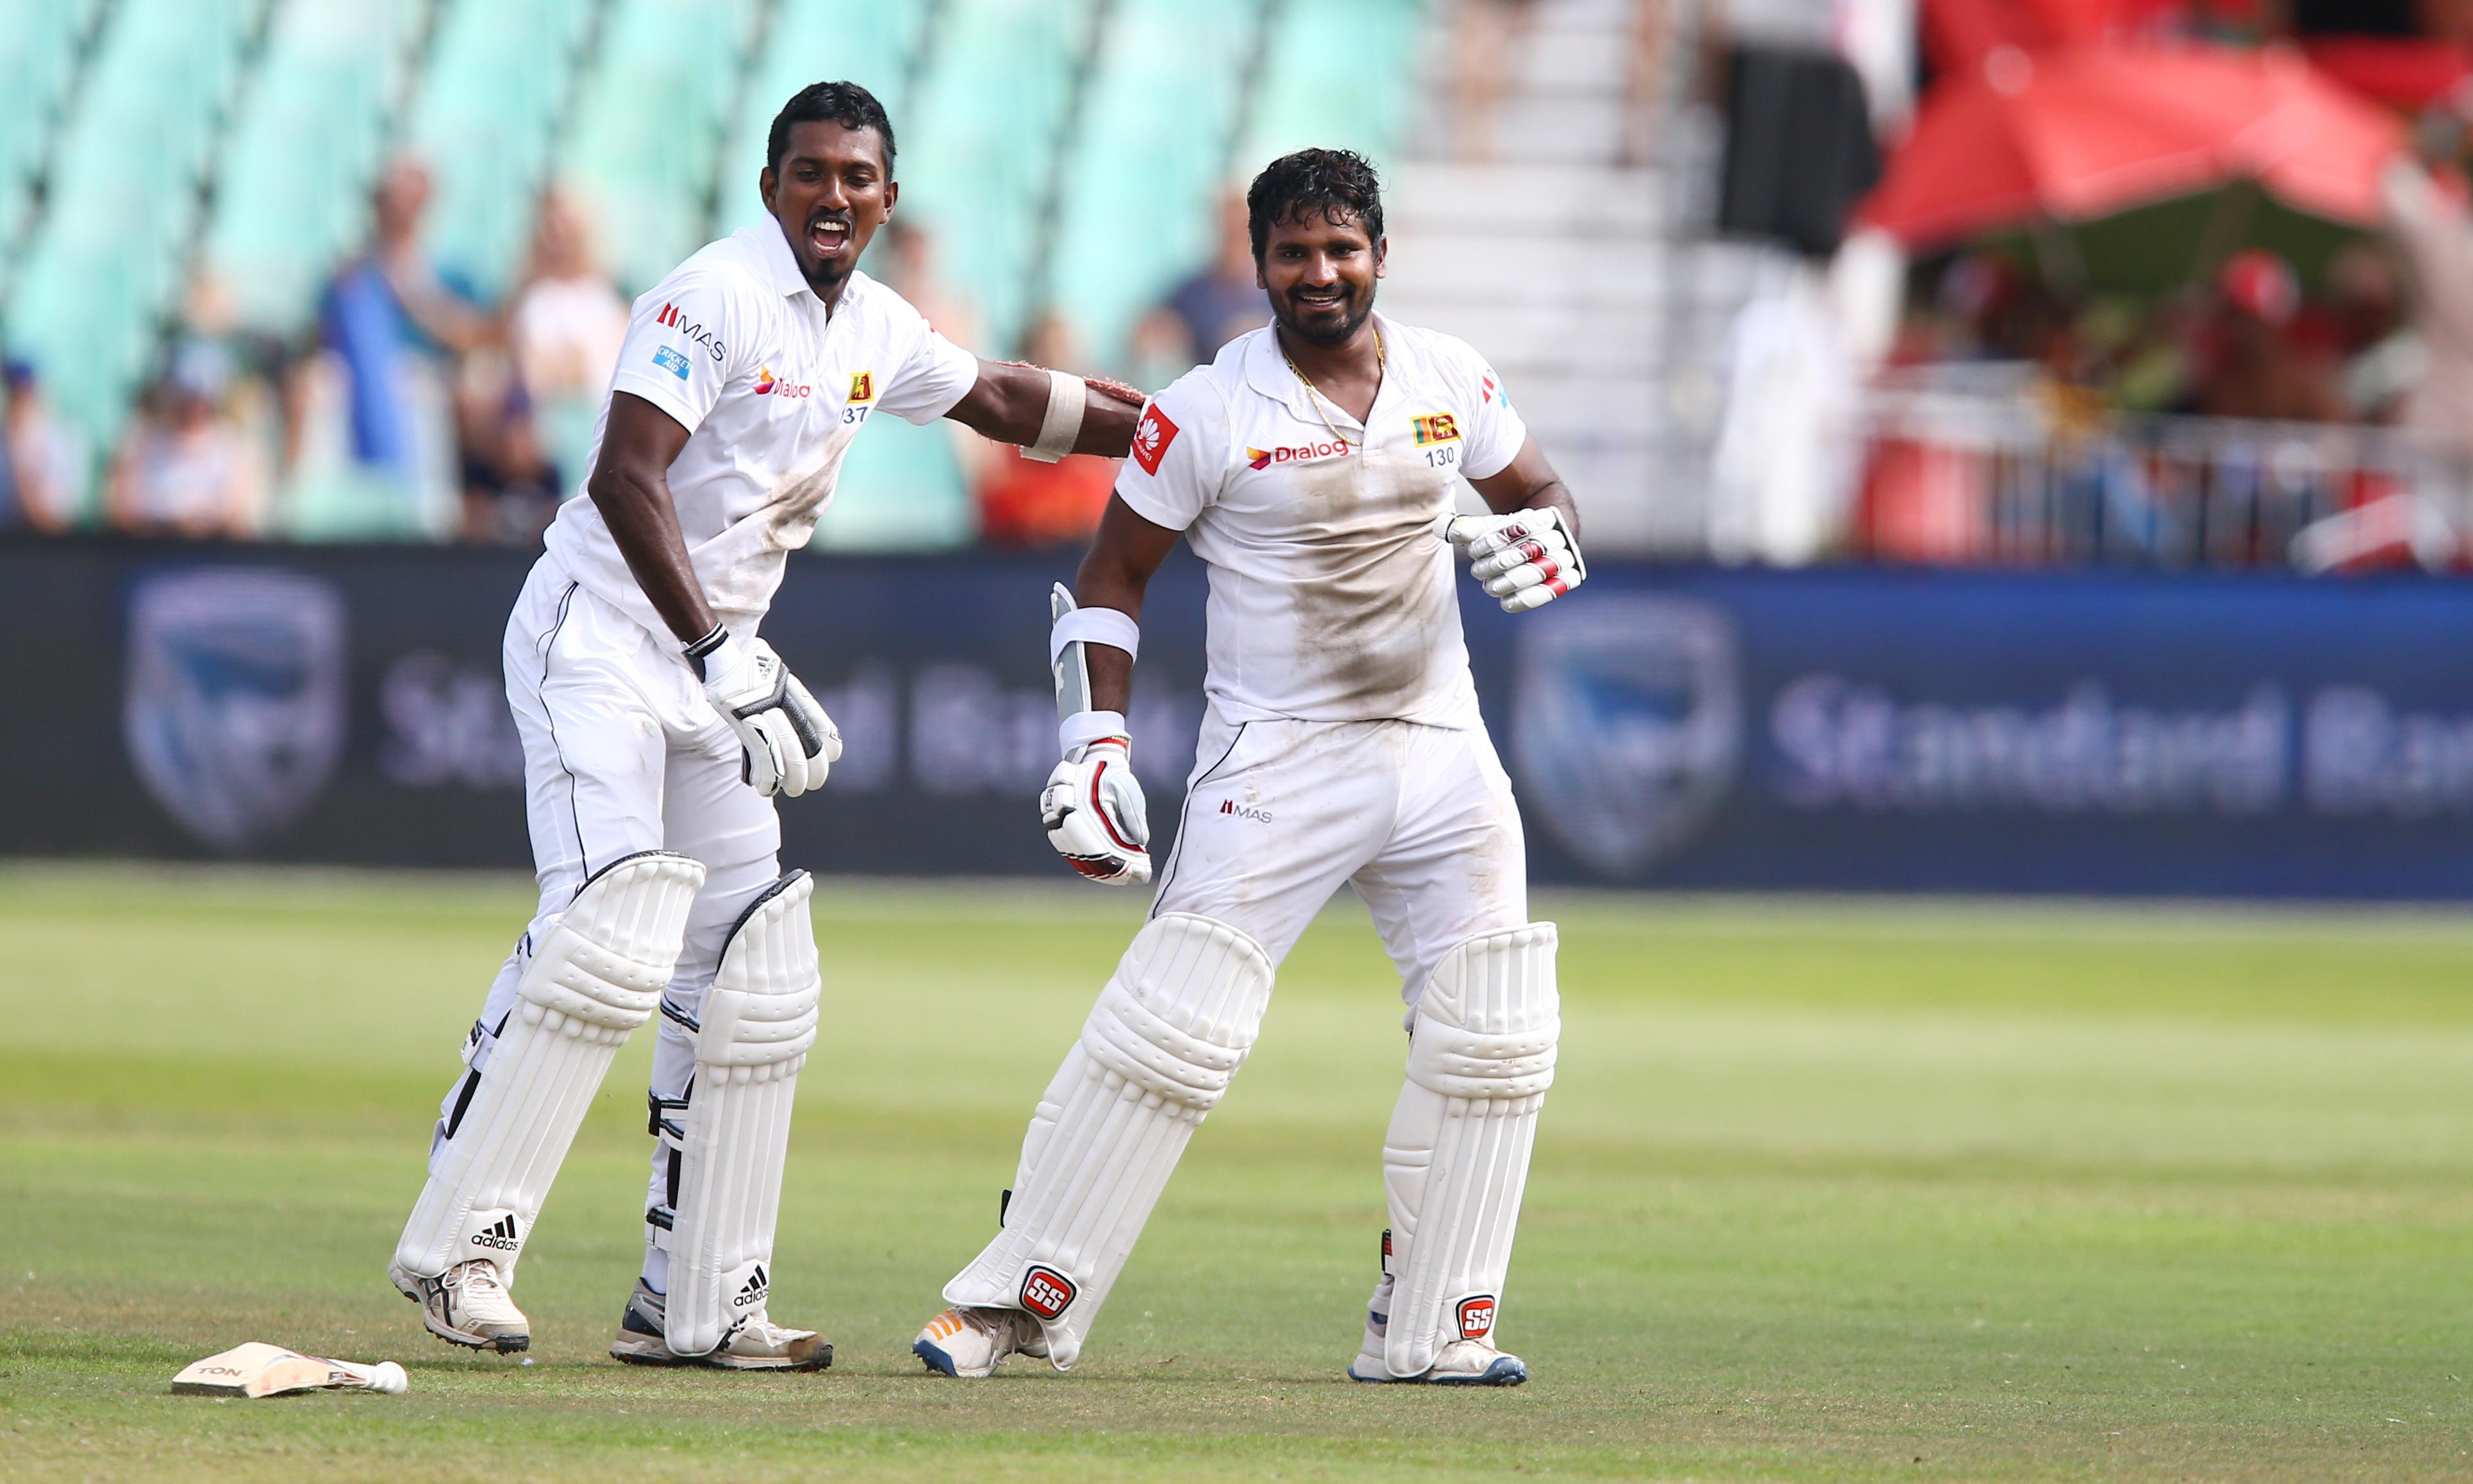 In an age of endless cricket Sri Lanka just gave us a special moment